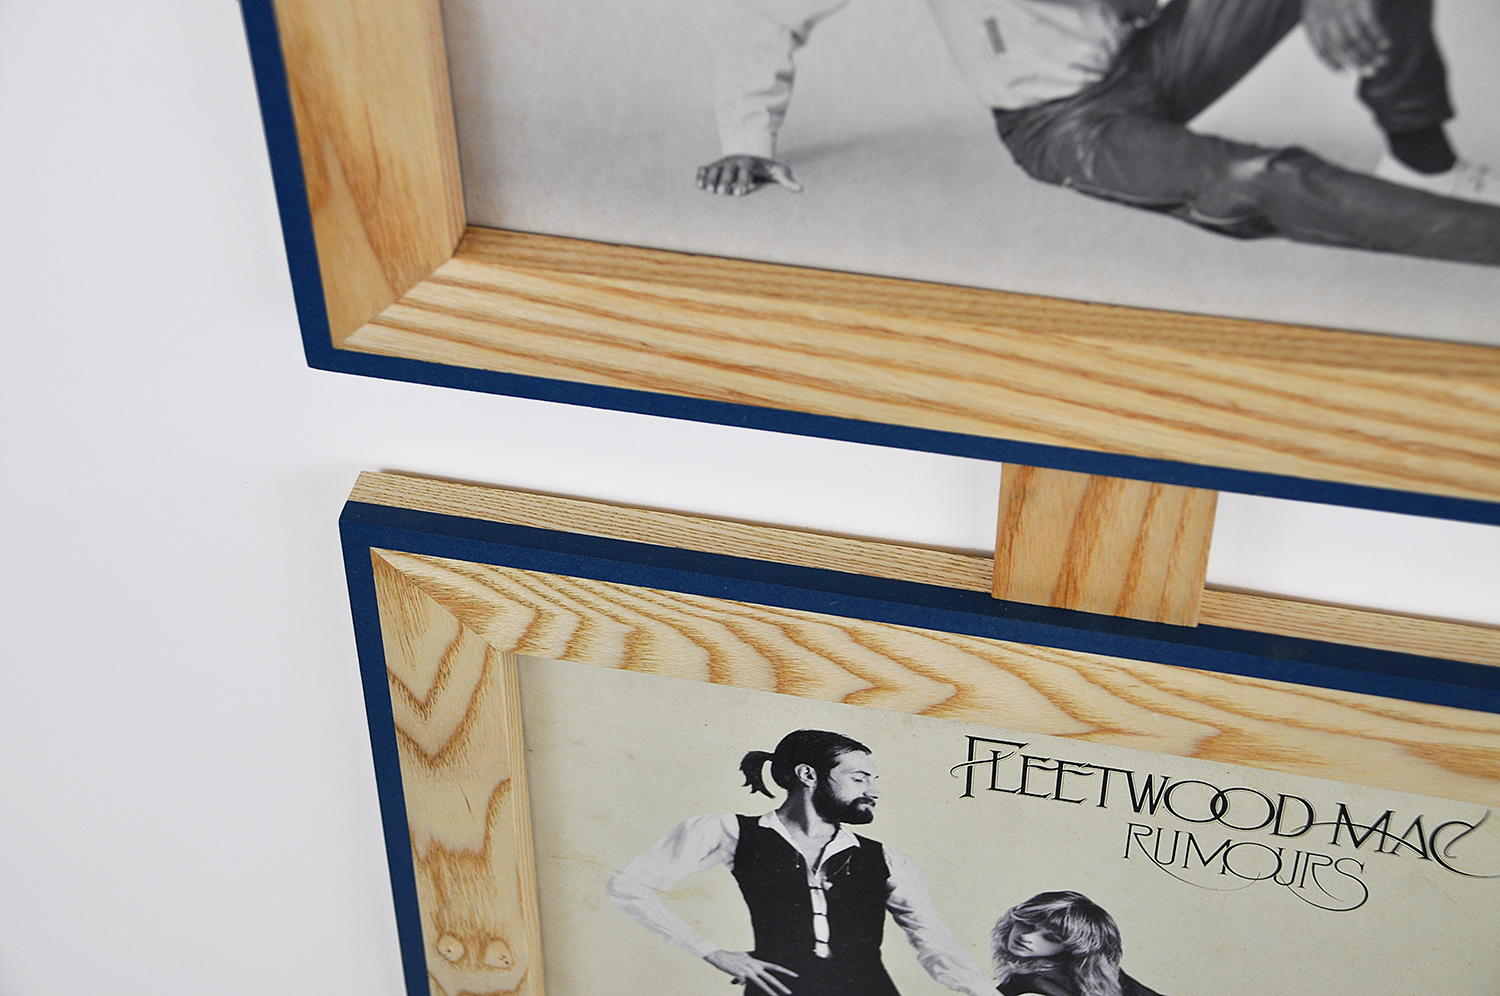 LP Vinyl Display Frames / Album Cover Frame - Bertram Whitford